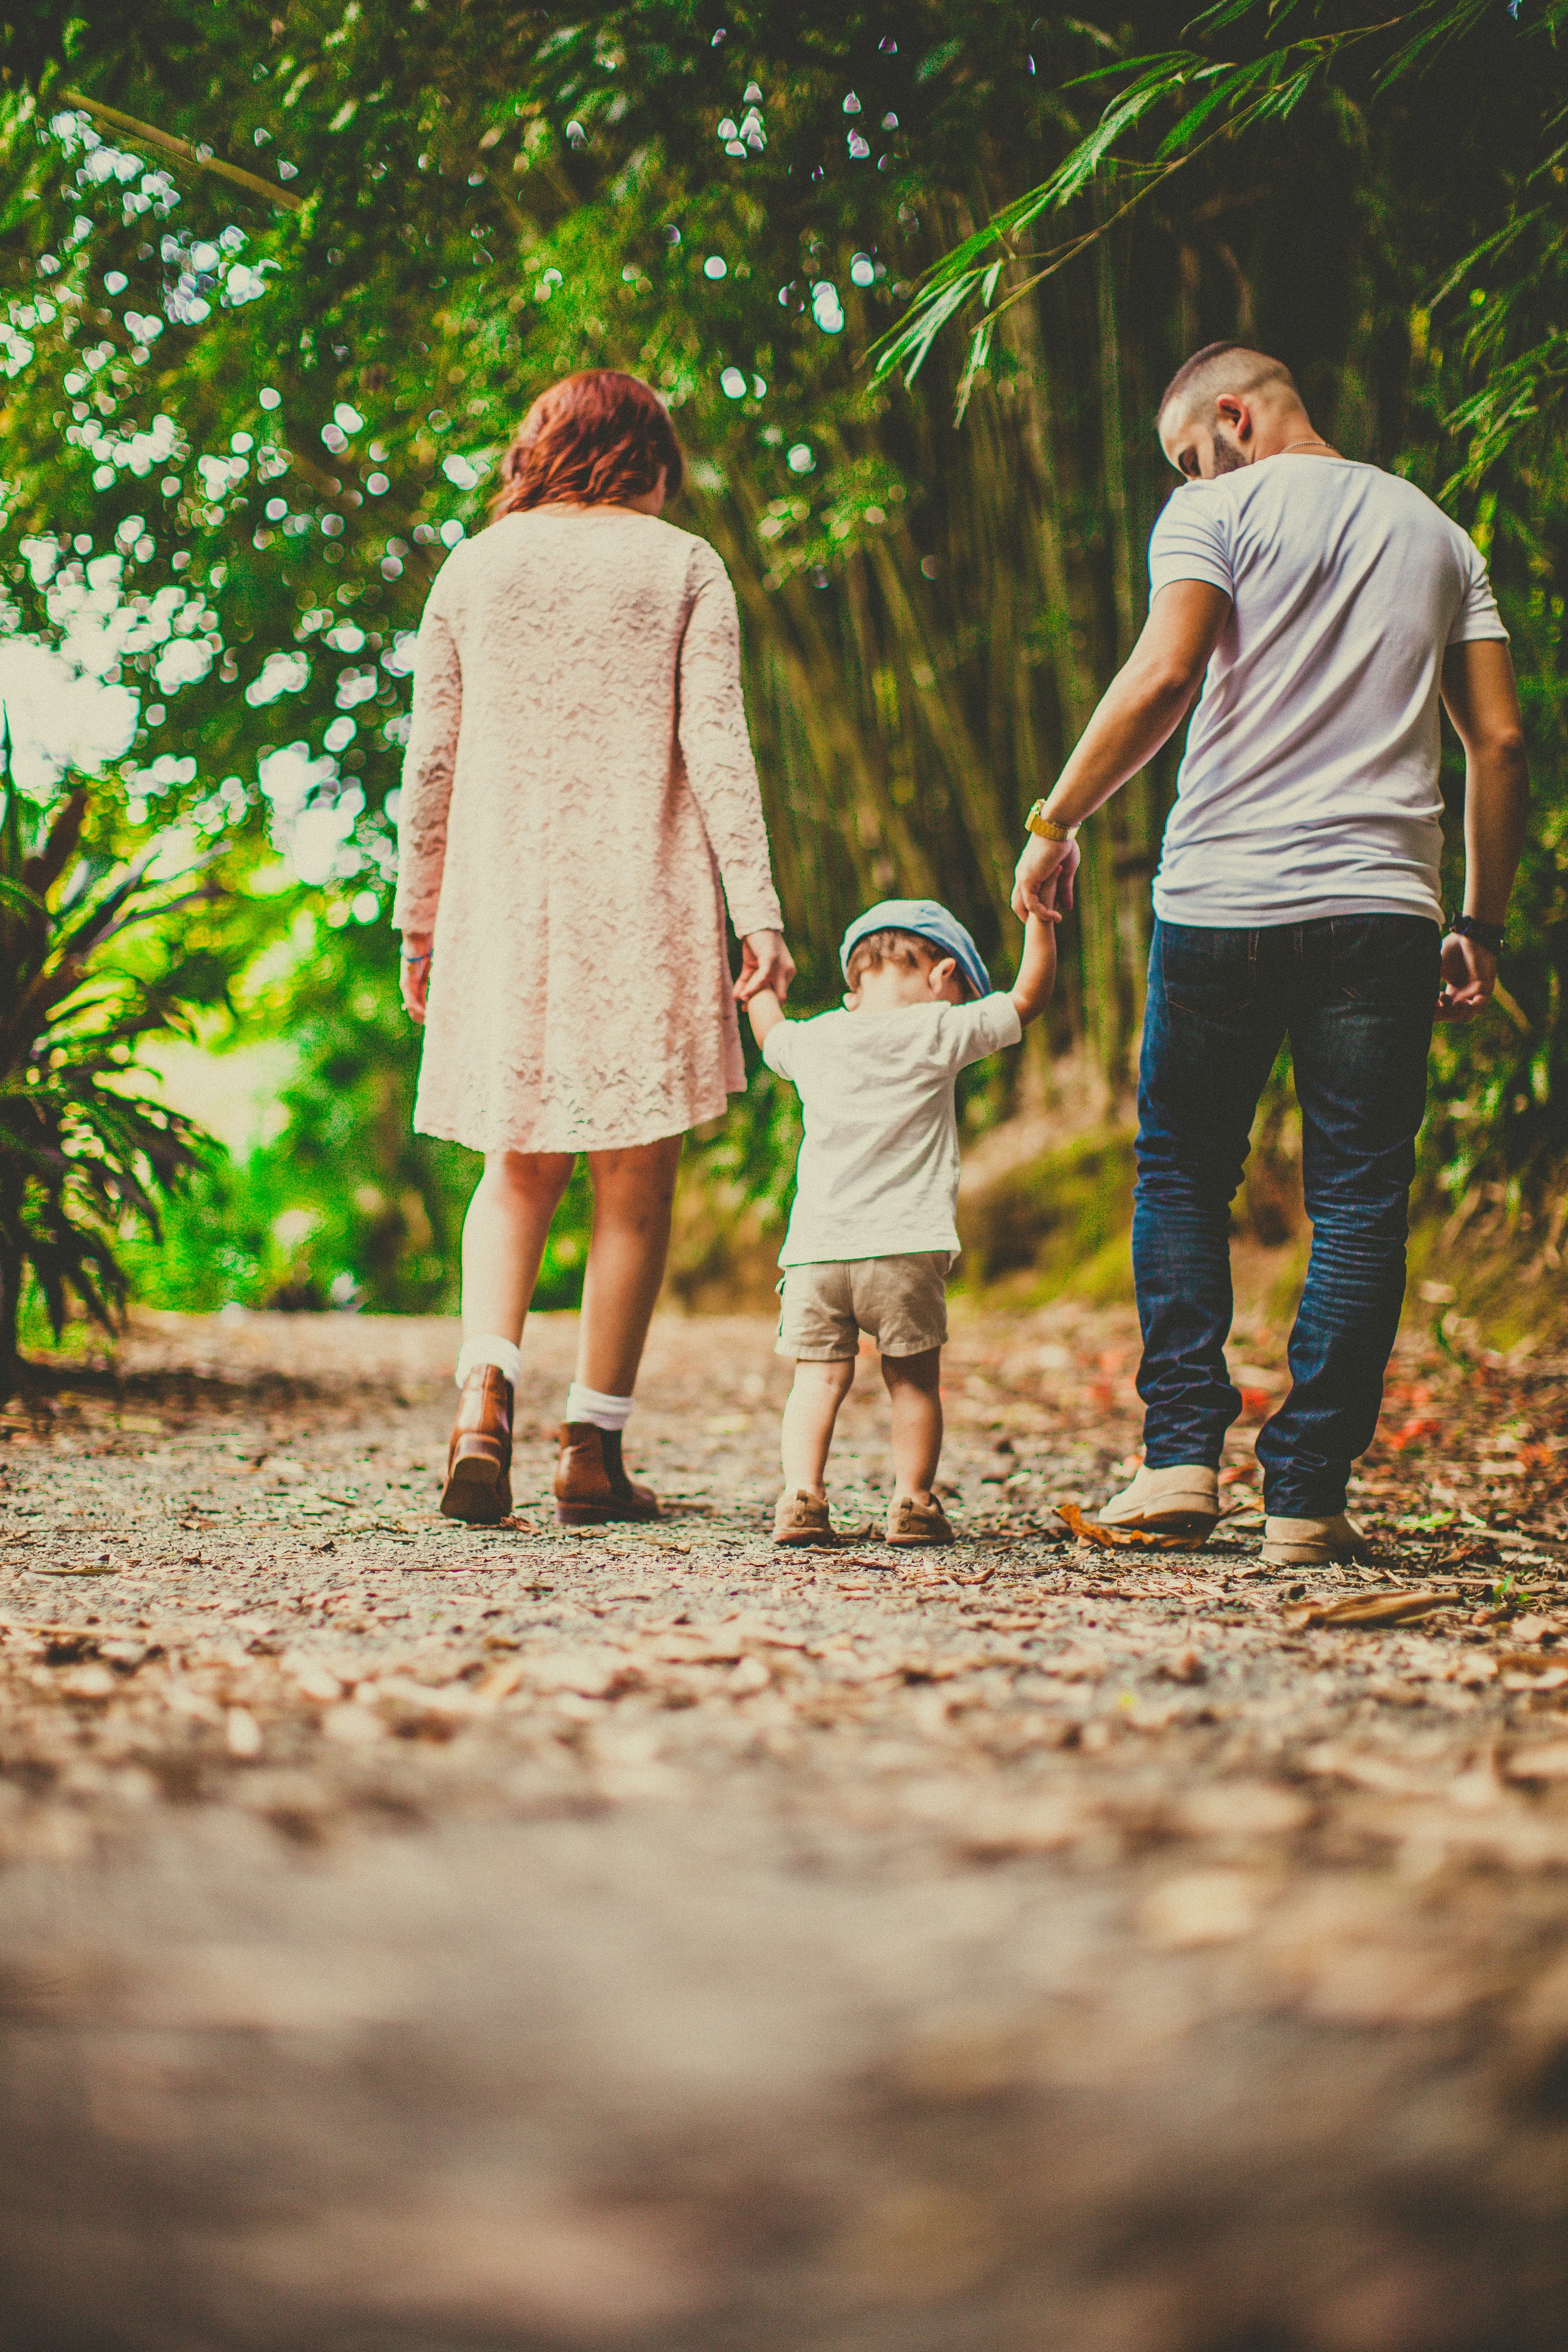 A couple with their son holding his hands on each side walking in an unpaved pathway outdoors   Source: Pexels